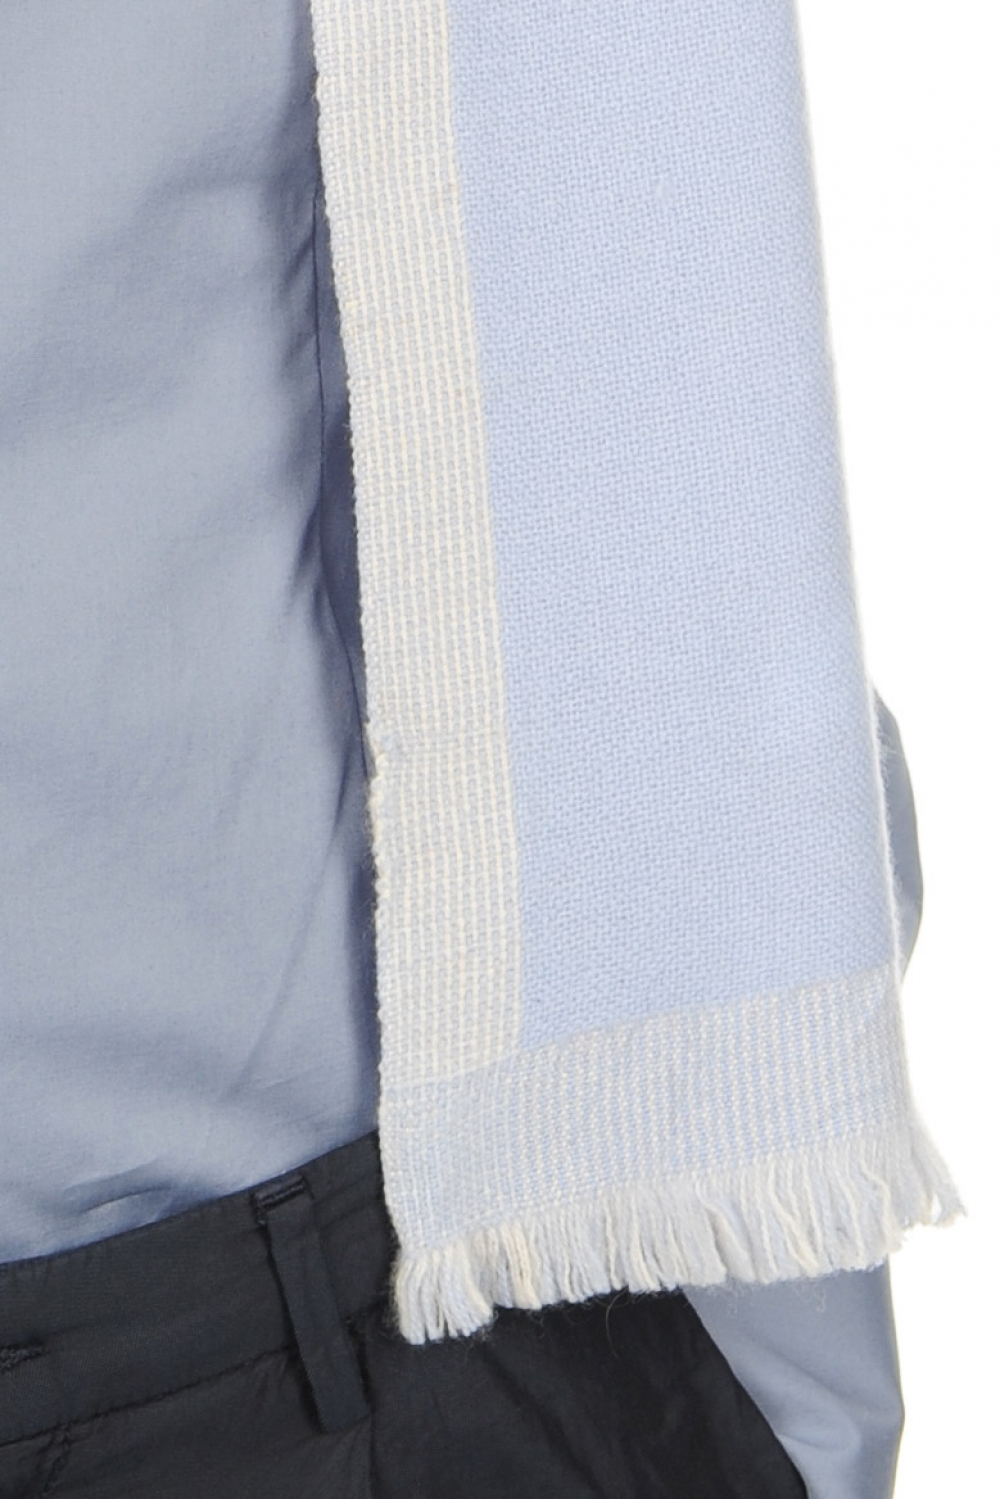 cashmere accessories scarves  mufflers tonnerre kentucky blue pristine 180 x 24 cm